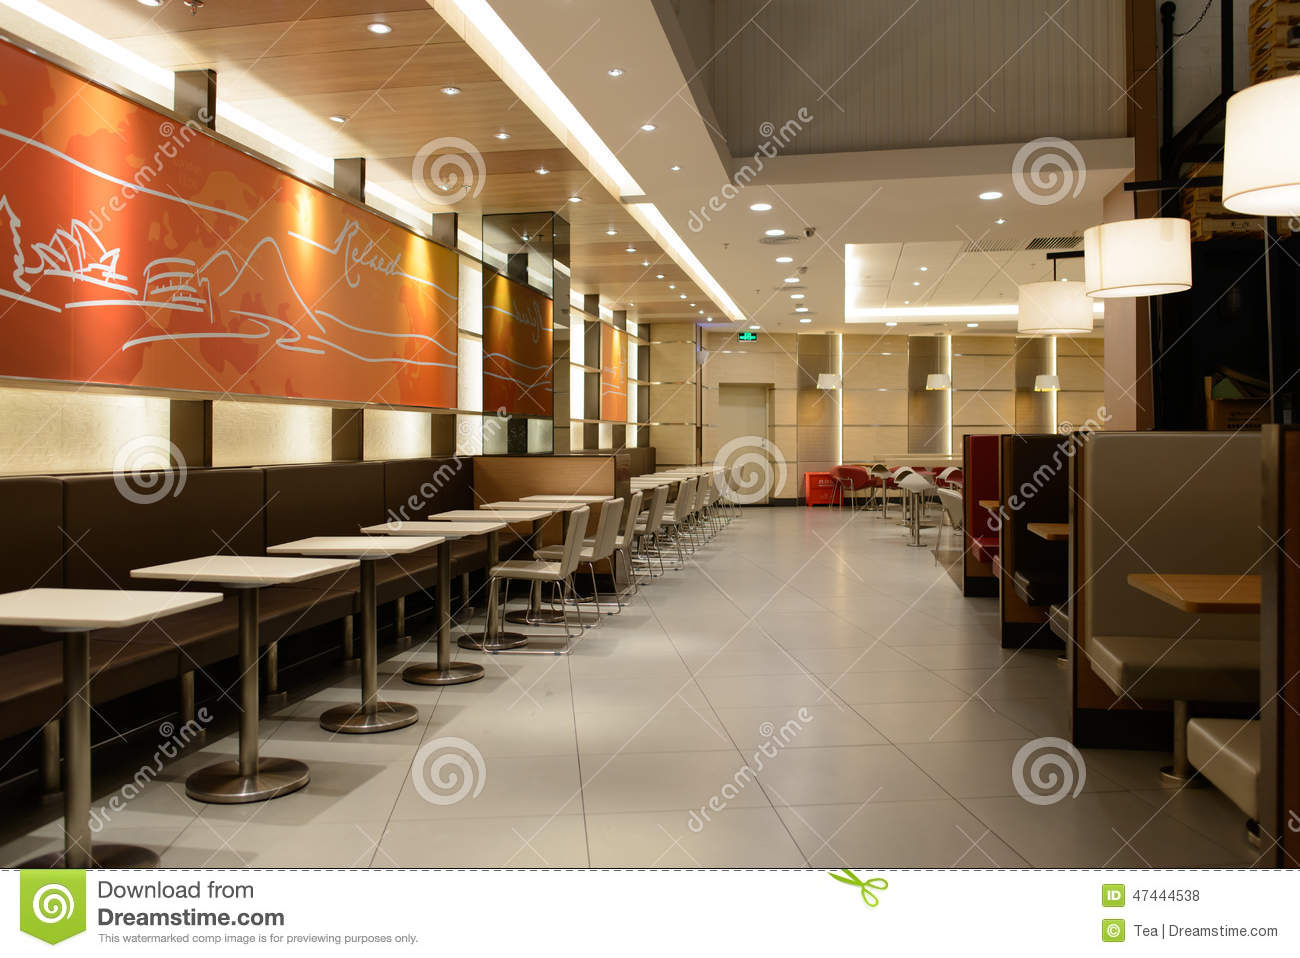 Kfc restaurant editorial stock photo image